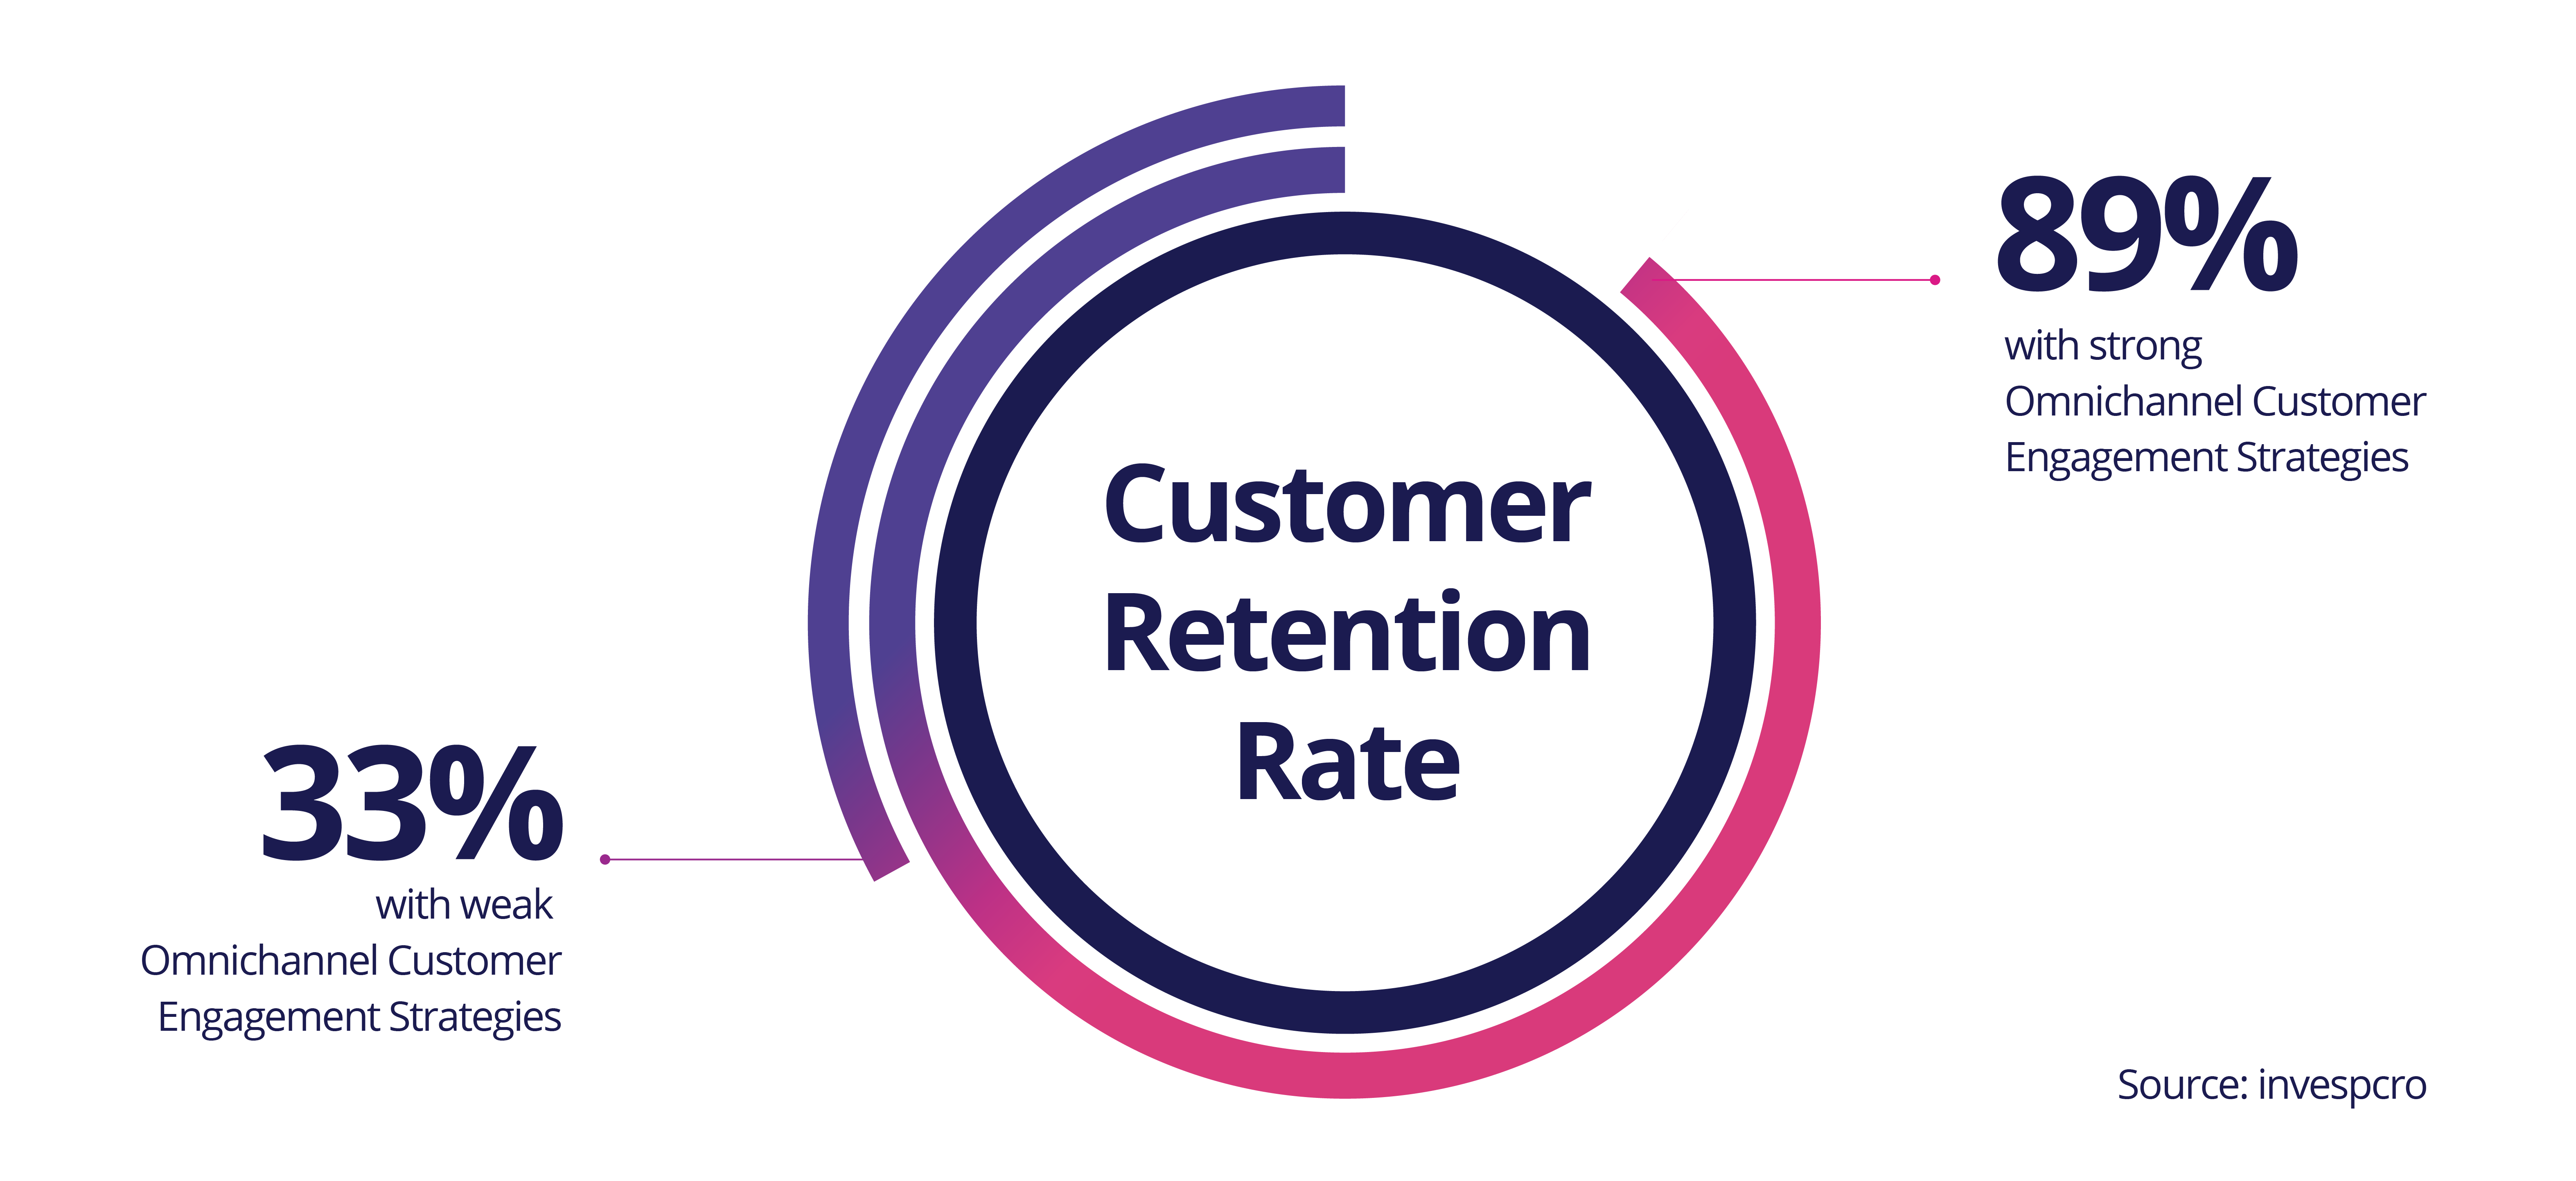 Customer retention by companies with omnichannel strategies compared to those without